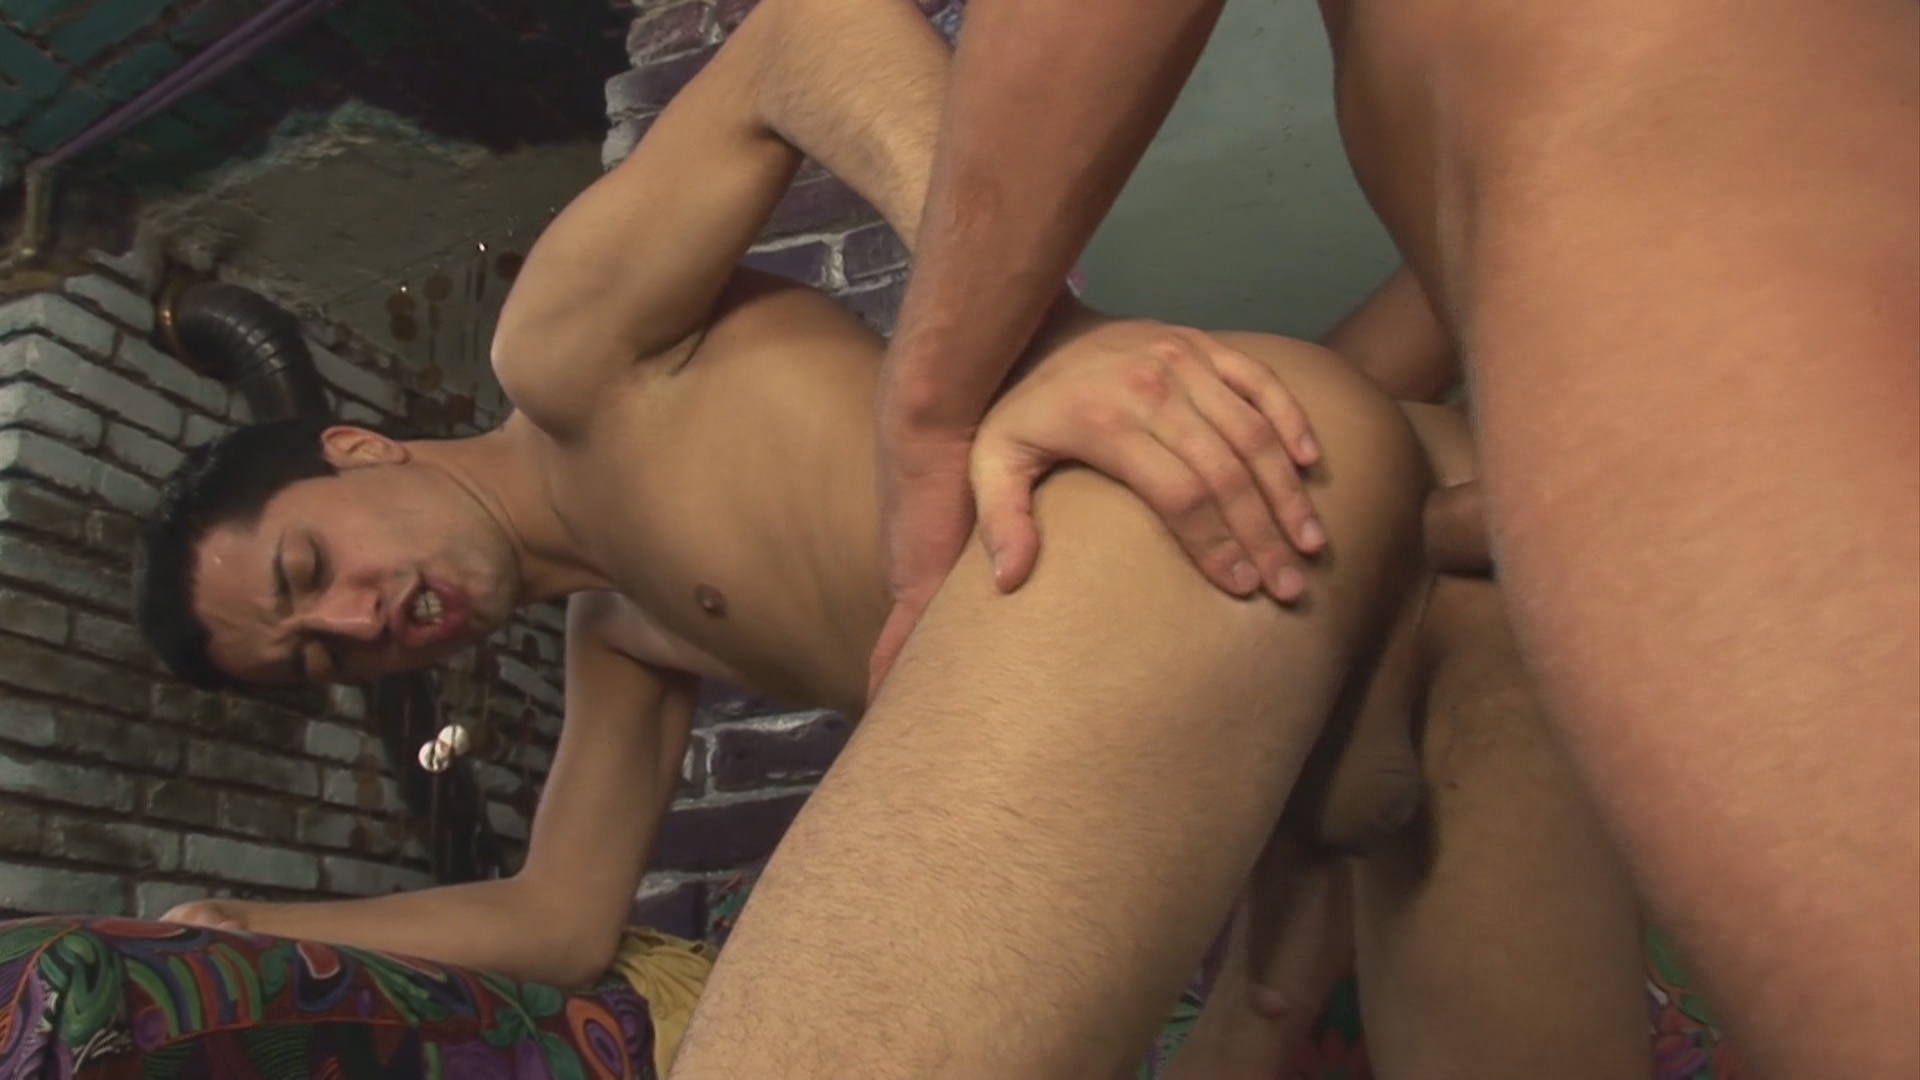 Rookie Guys 4 Xvideo gay